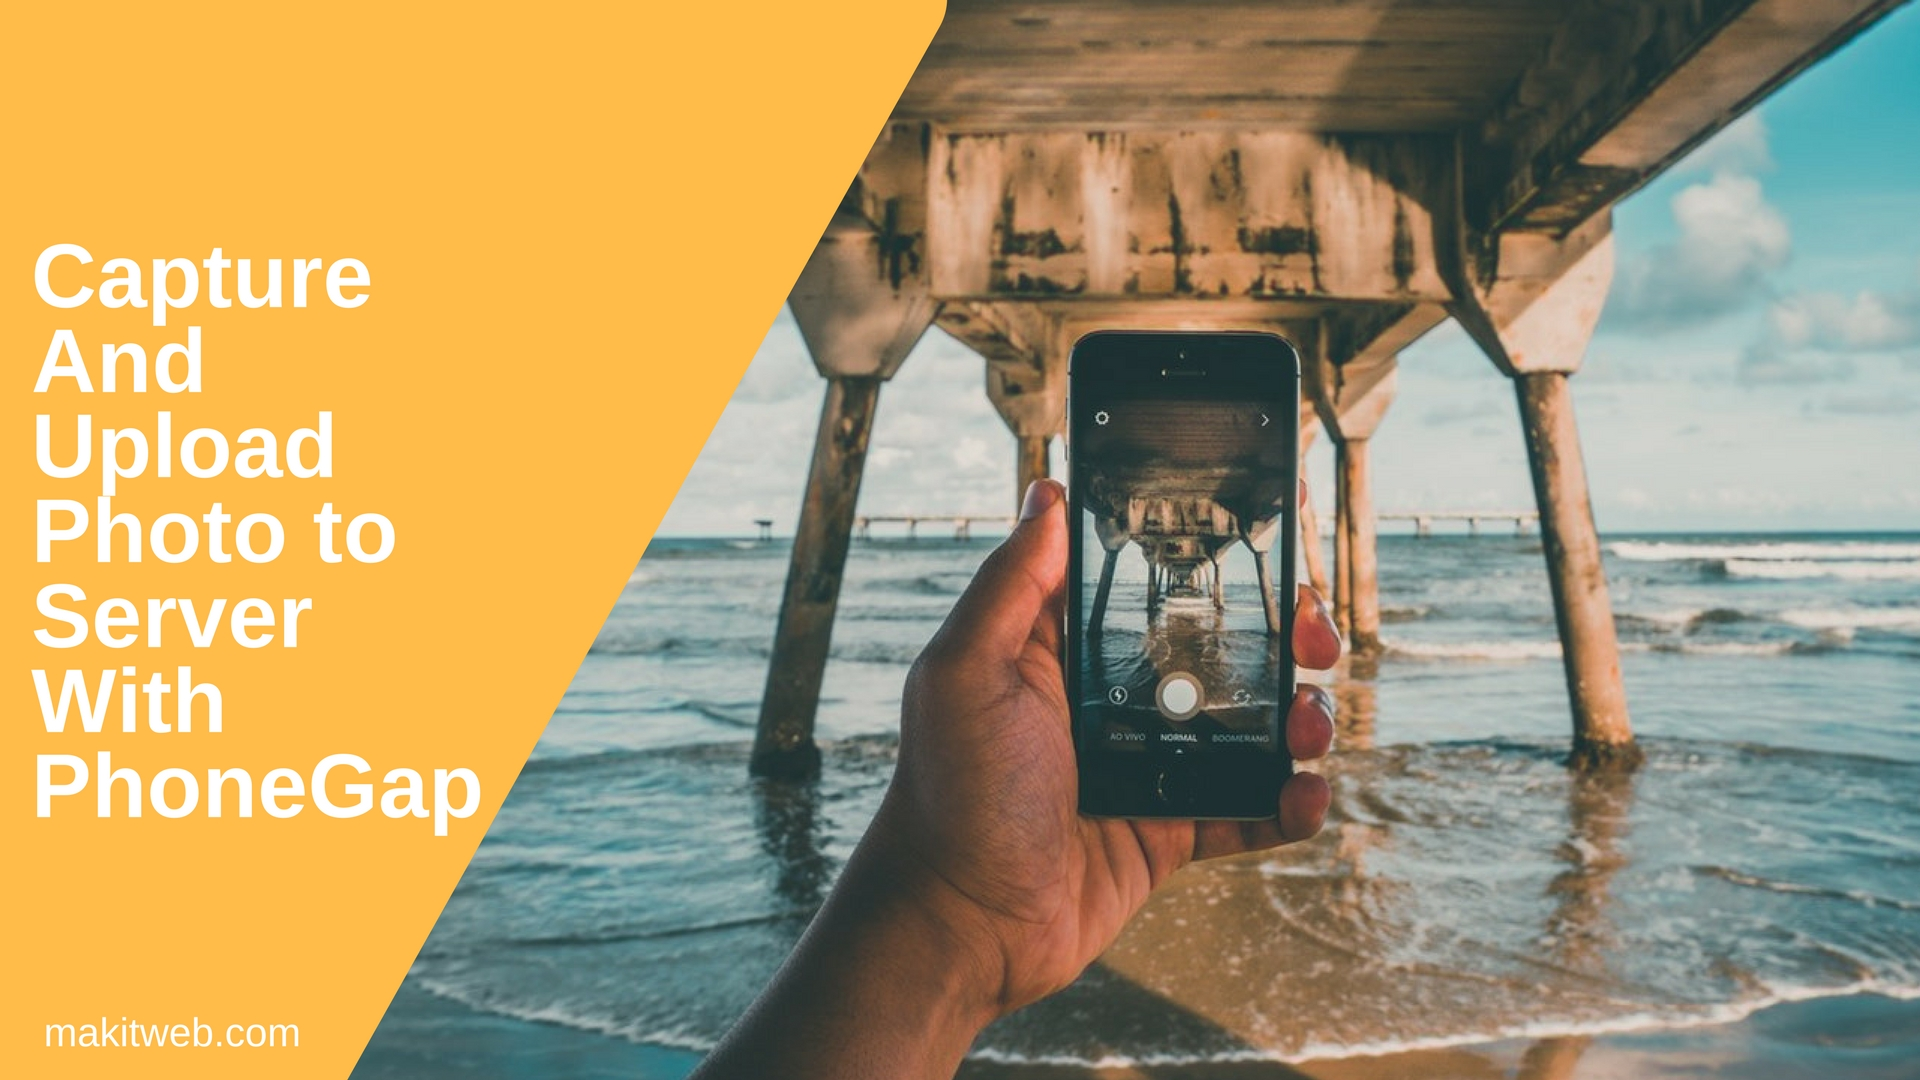 Capture and Upload photo to server with PhoneGap